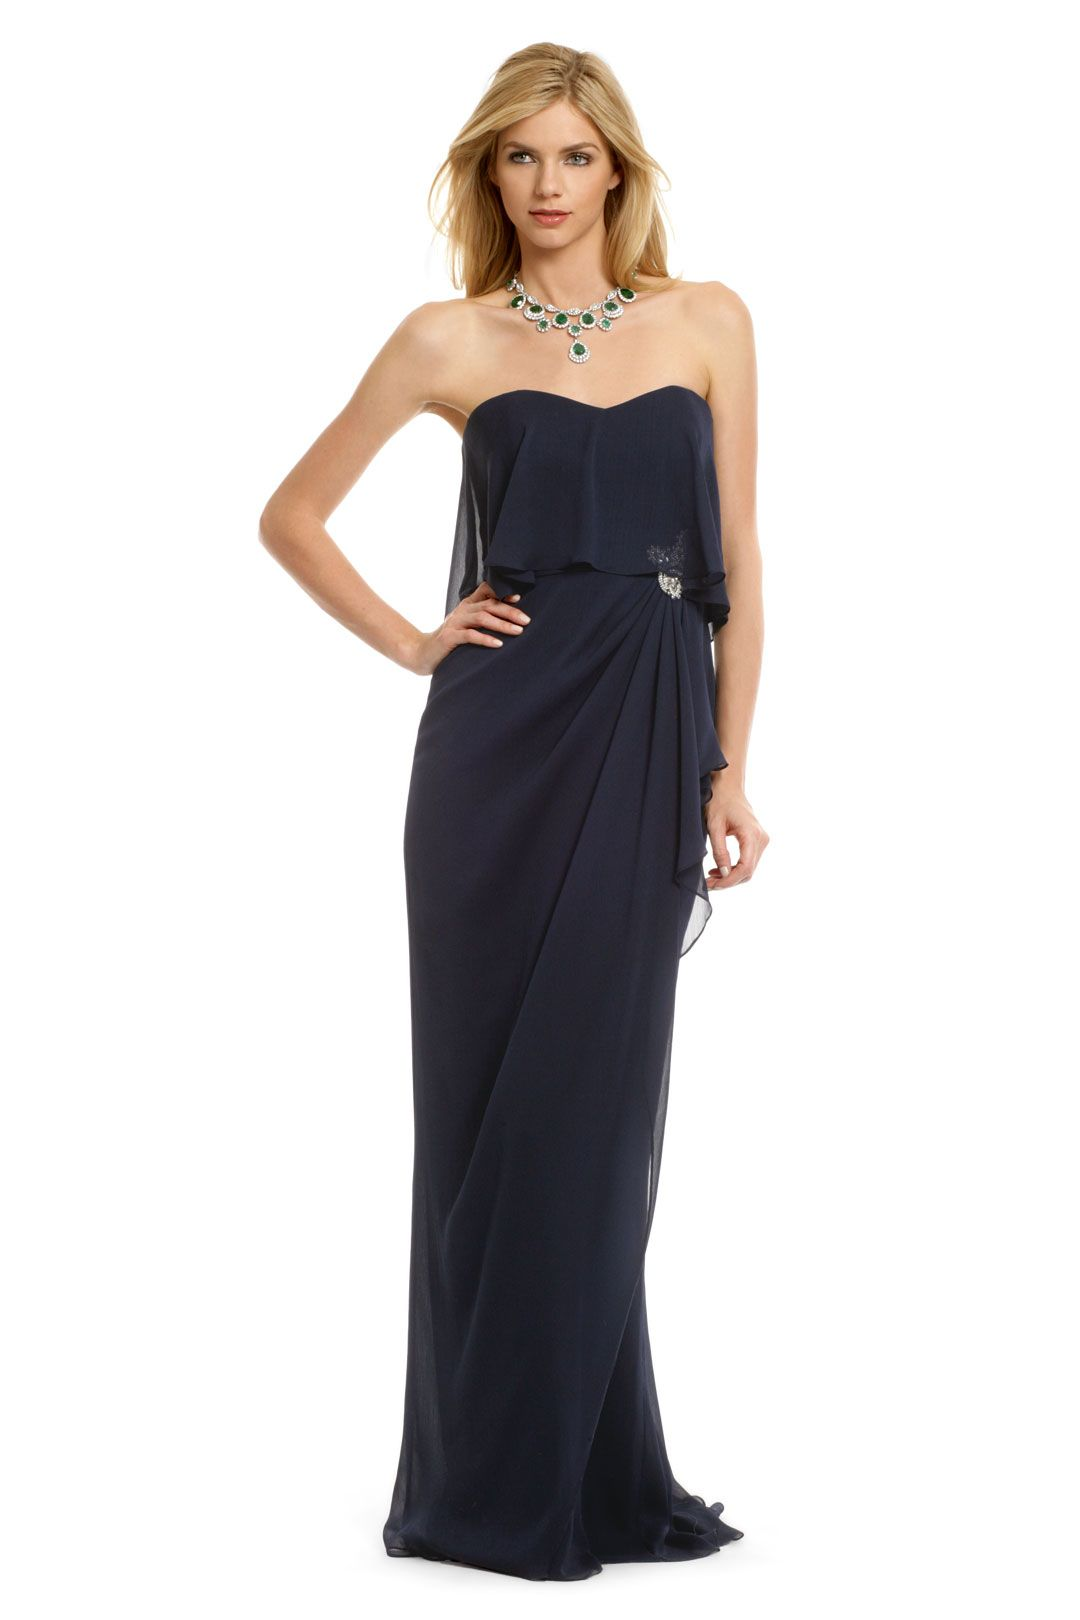 Winslet Beauty Gown   Badgley mischka, Gowns and Beautiful gowns